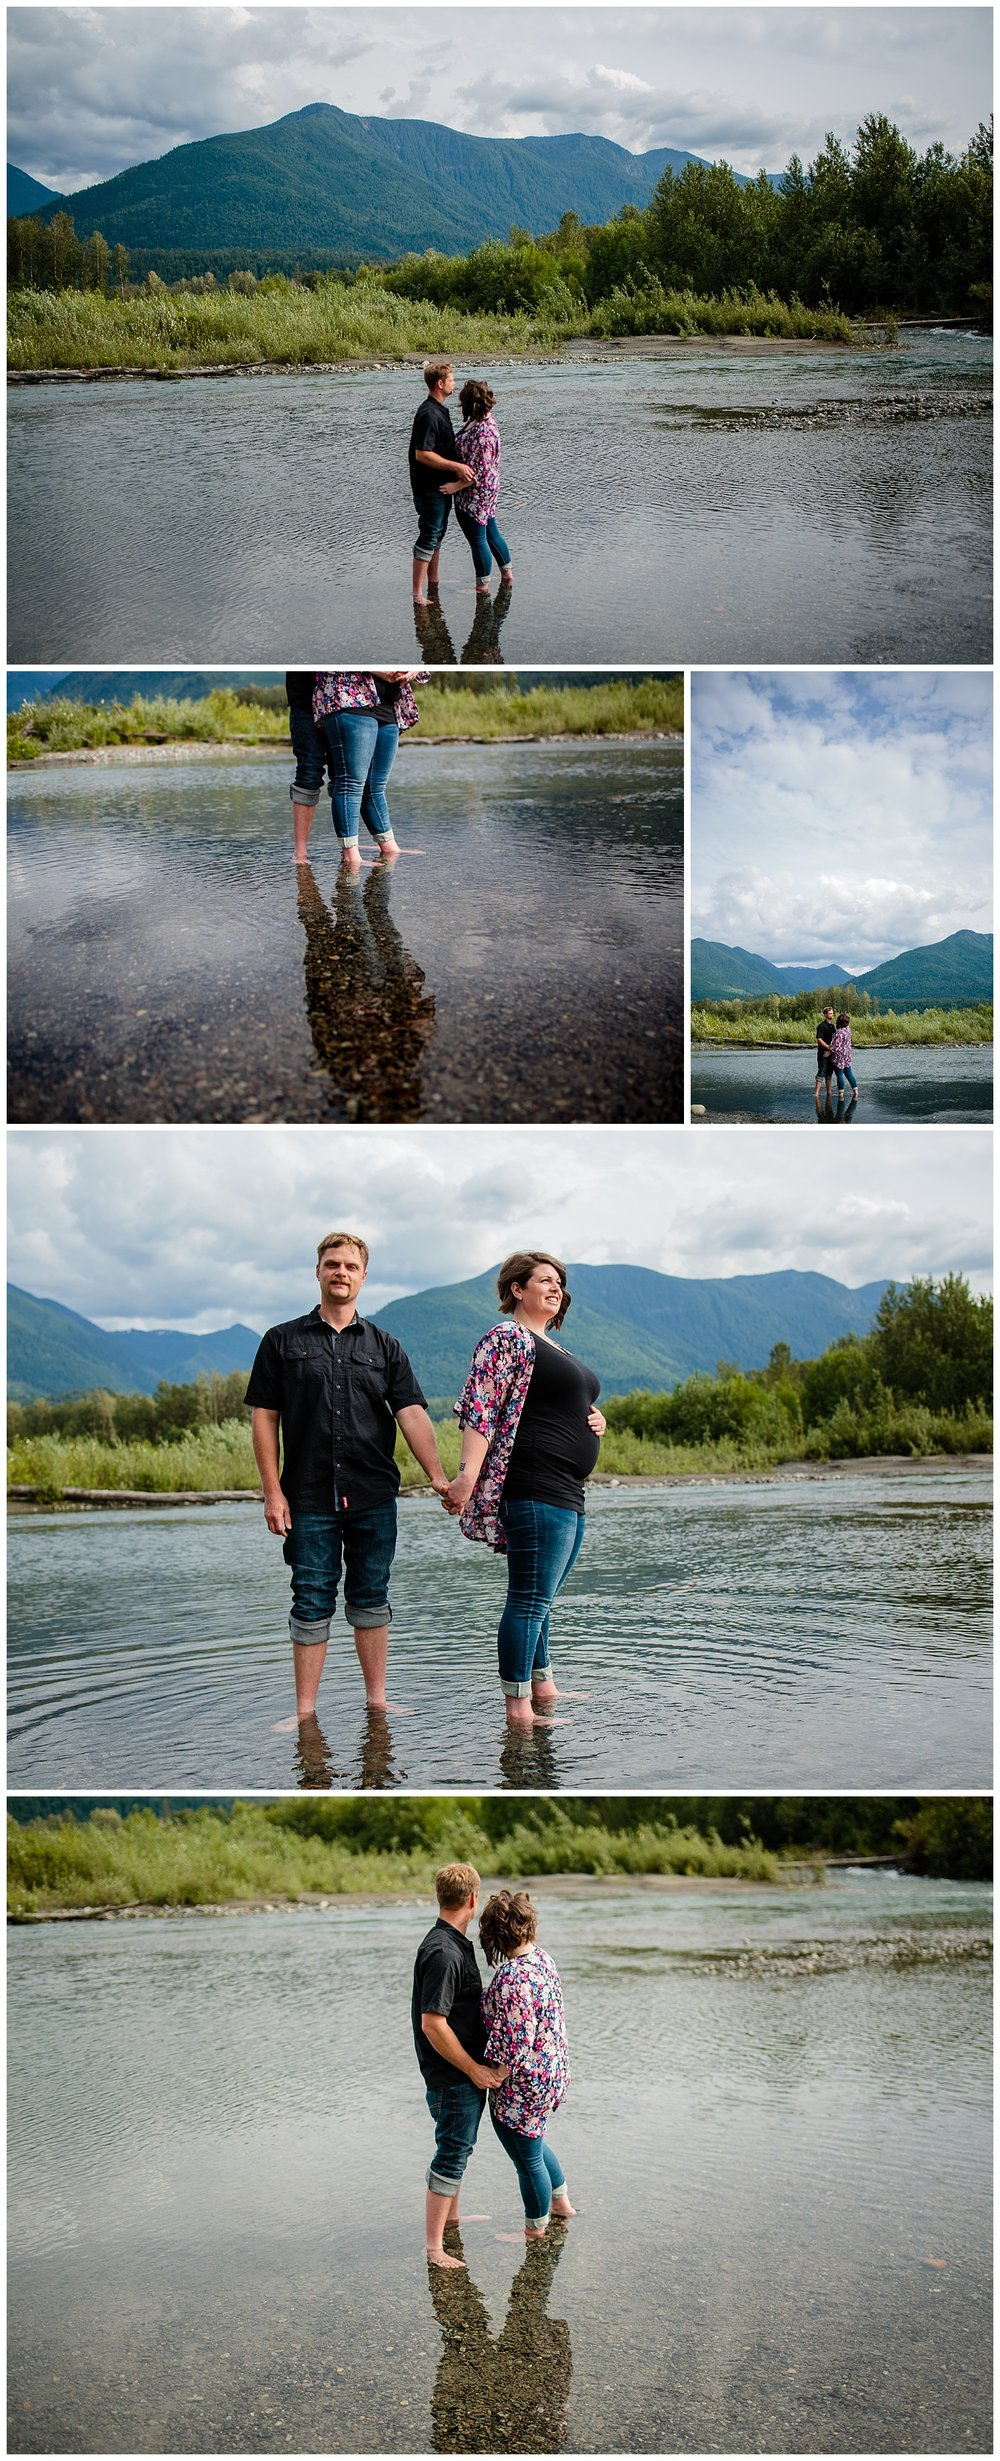 Chilliwack River Bank Mountain Chilliwack Fun  Engagement Photographer 171_collage.jpg